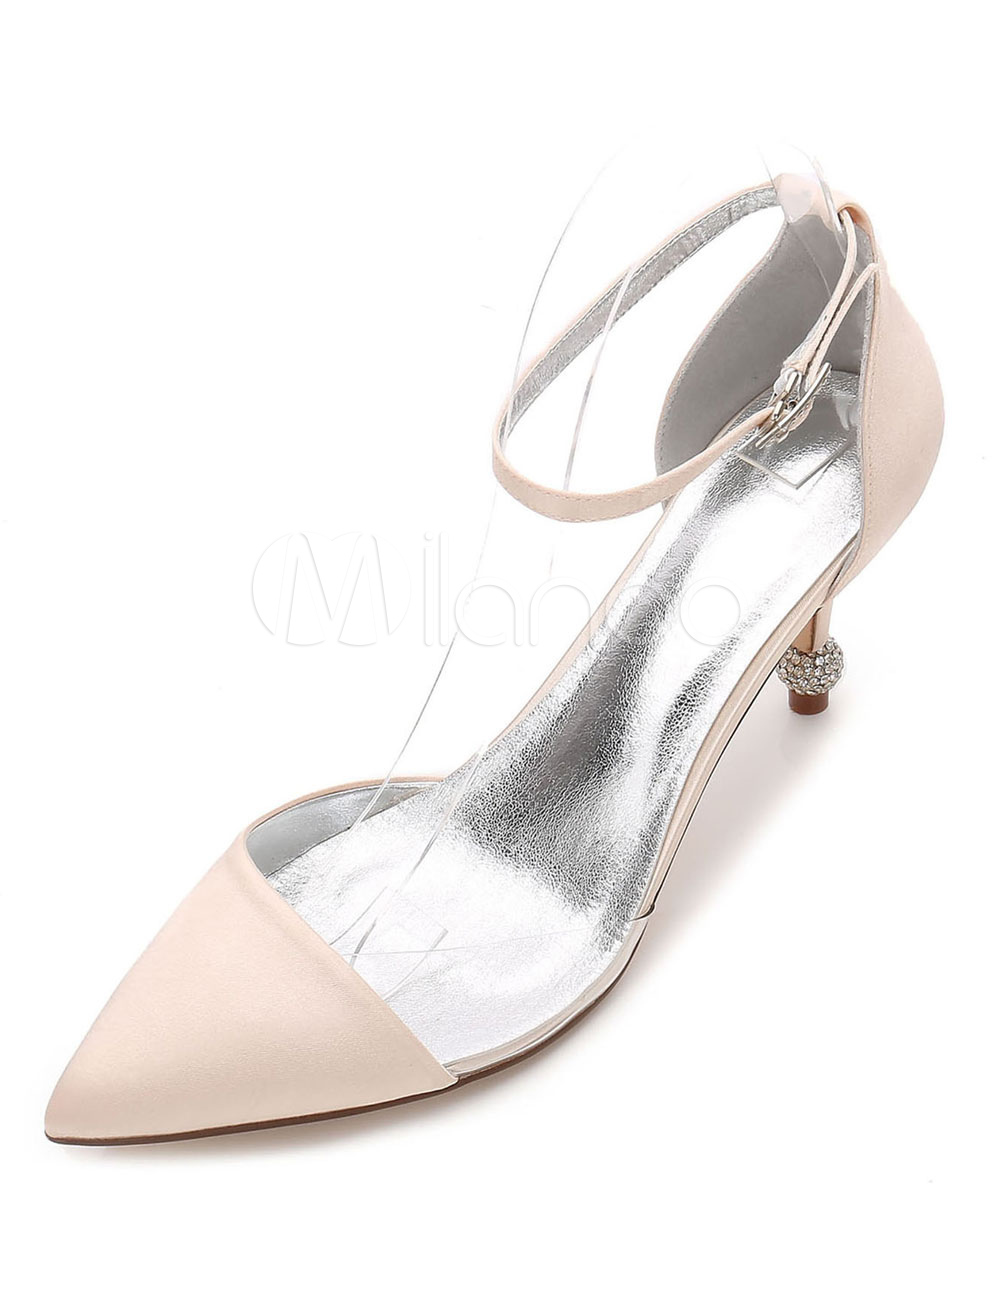 Champagne Wedding Shoes Satin Bridesmaid Shoes Pointed Toe Ankle Strap Heels